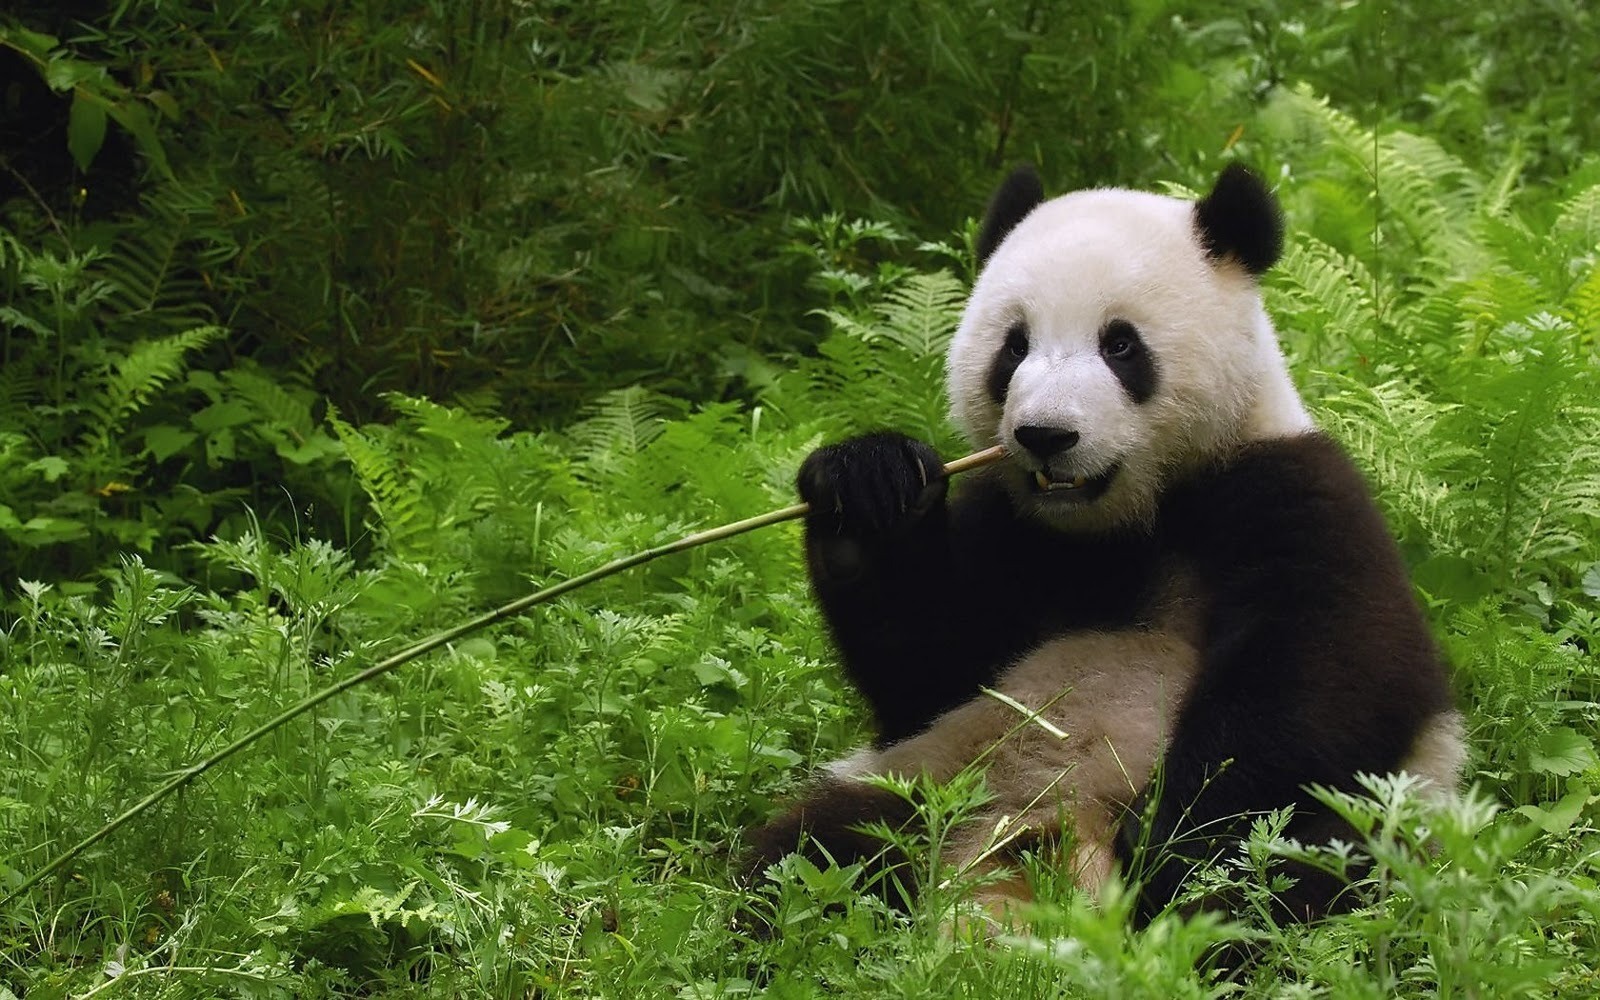 Central Wallpaper Cute Panda Bears HD Wallpapers 1600x1000